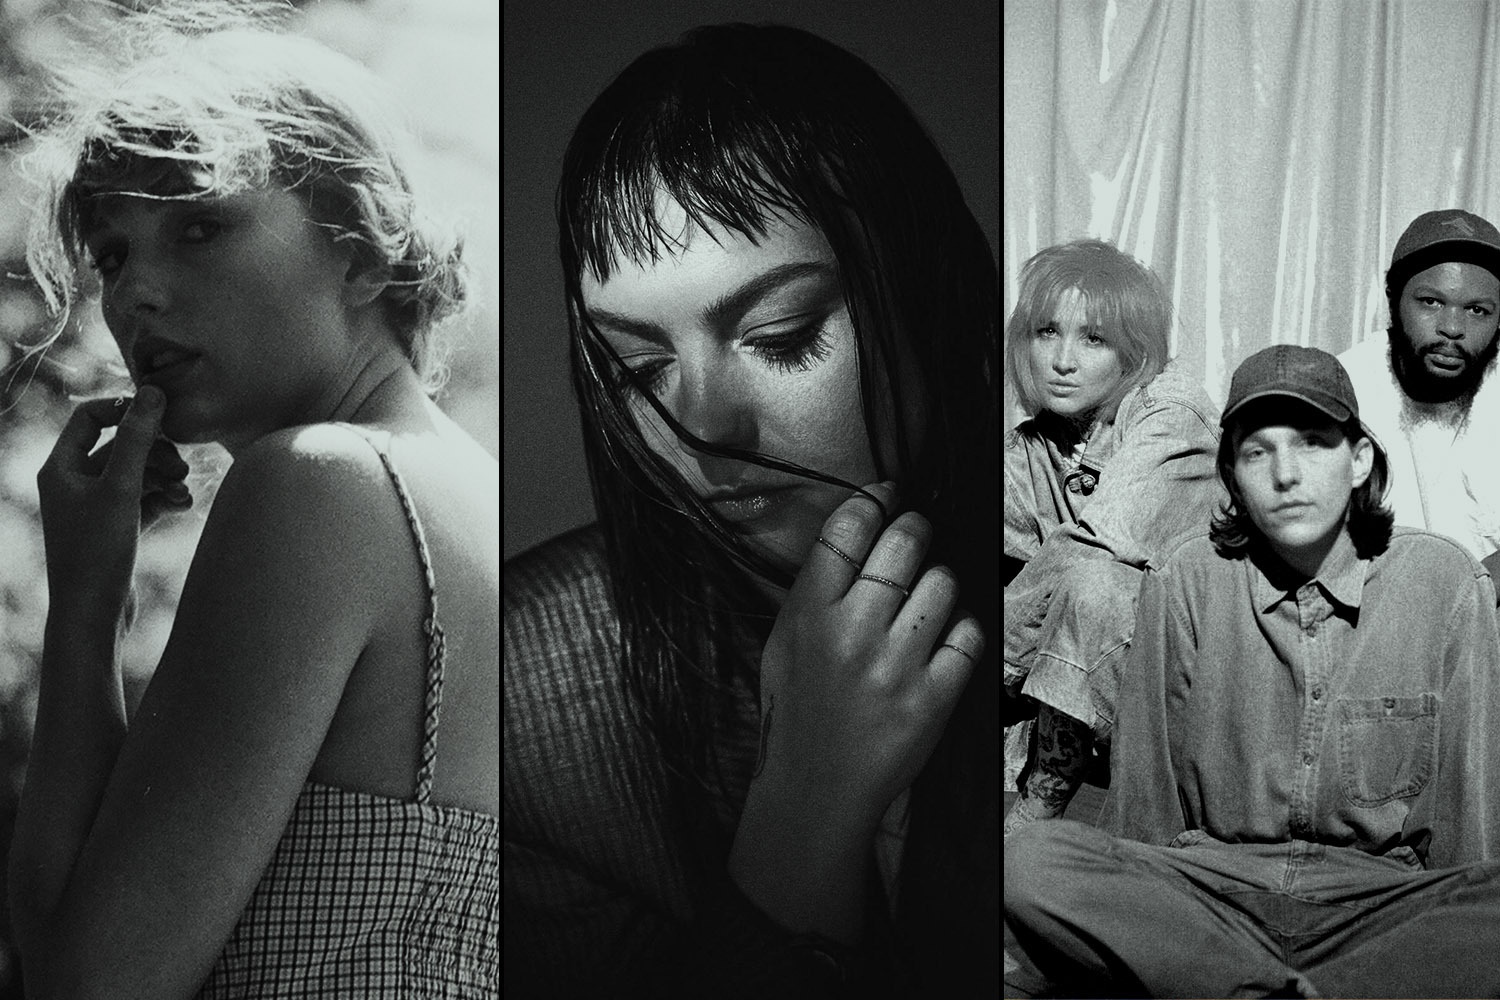 July saw a surprise Taylor Swift album, an indie rock reckoning, and more.